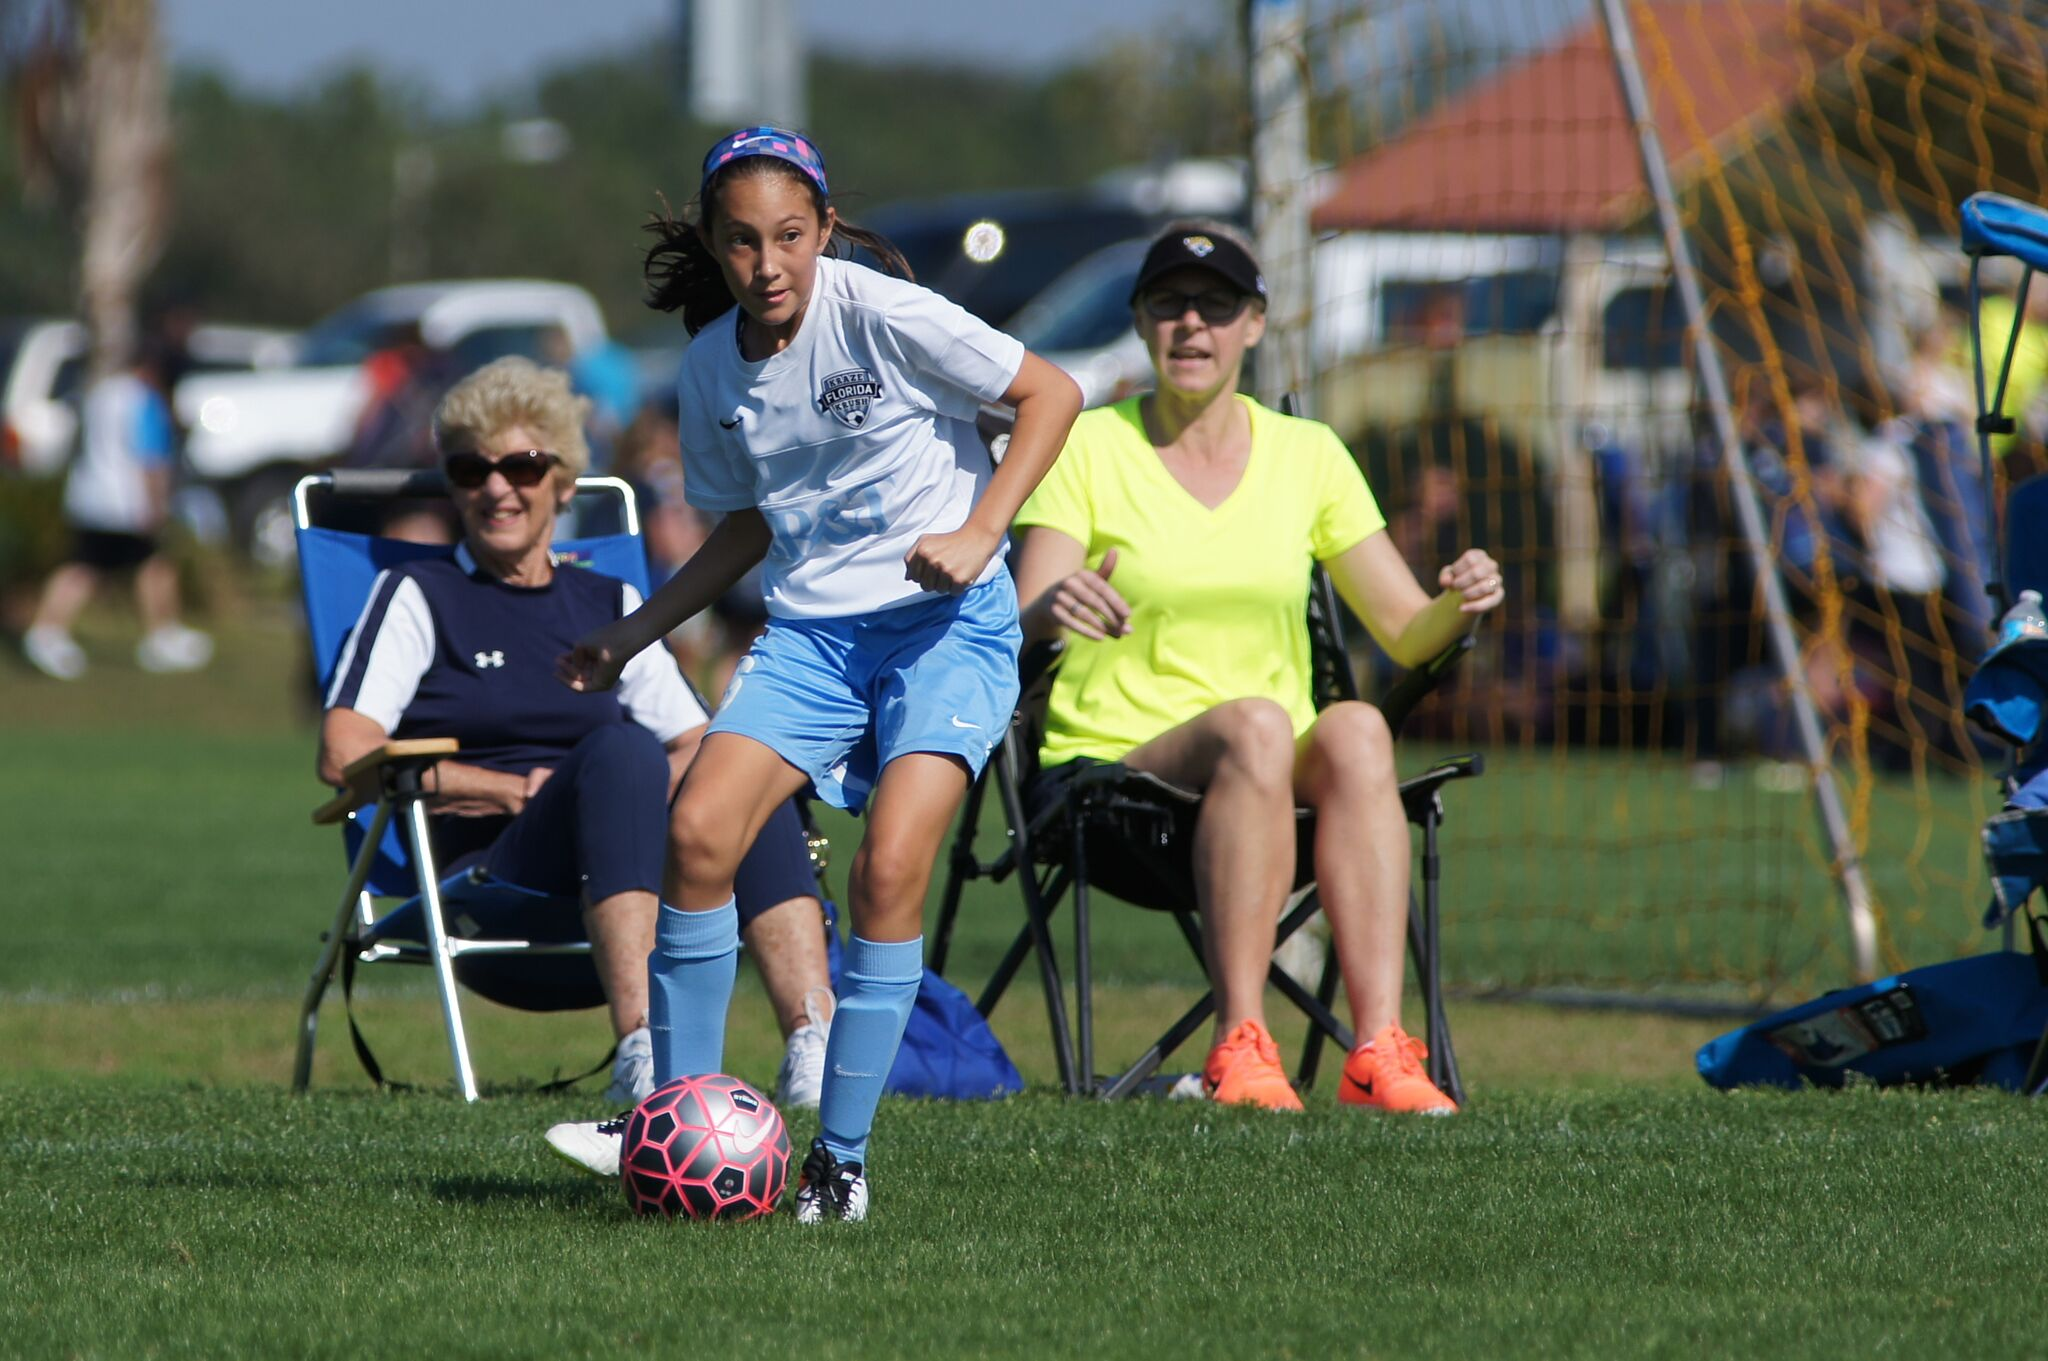 Check the champions league 2021/2022 group stage matchday 1 results and its schedule on as.com. Six FKK Teams Win at GPS PreSeason Classic! - Florida